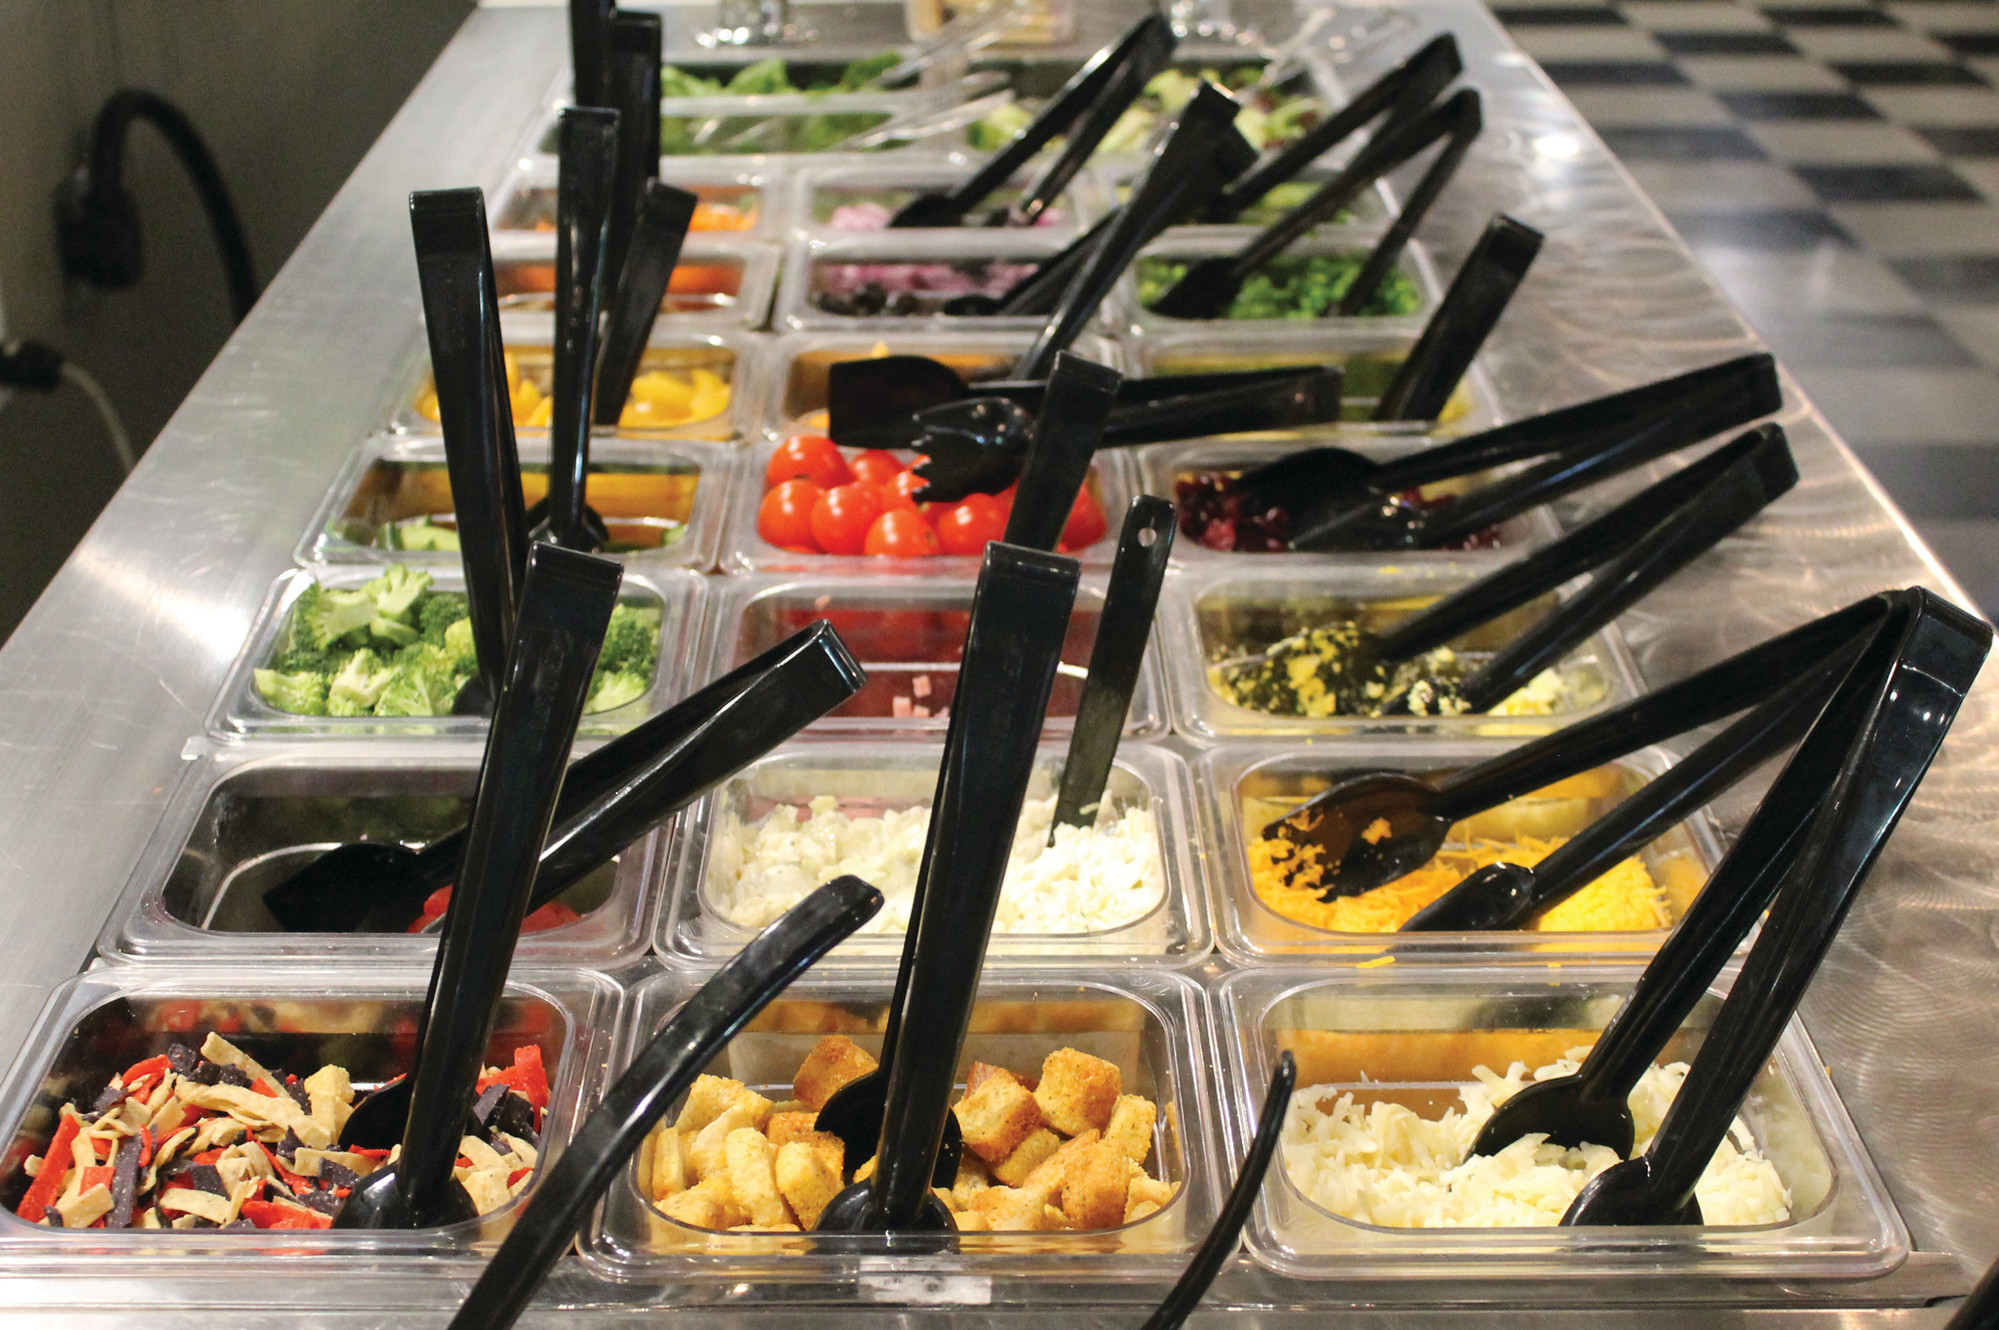 Mill Street Grill's salad bar features more than three dozen items, including a variety of vegetables, greens, fruit and dressings.